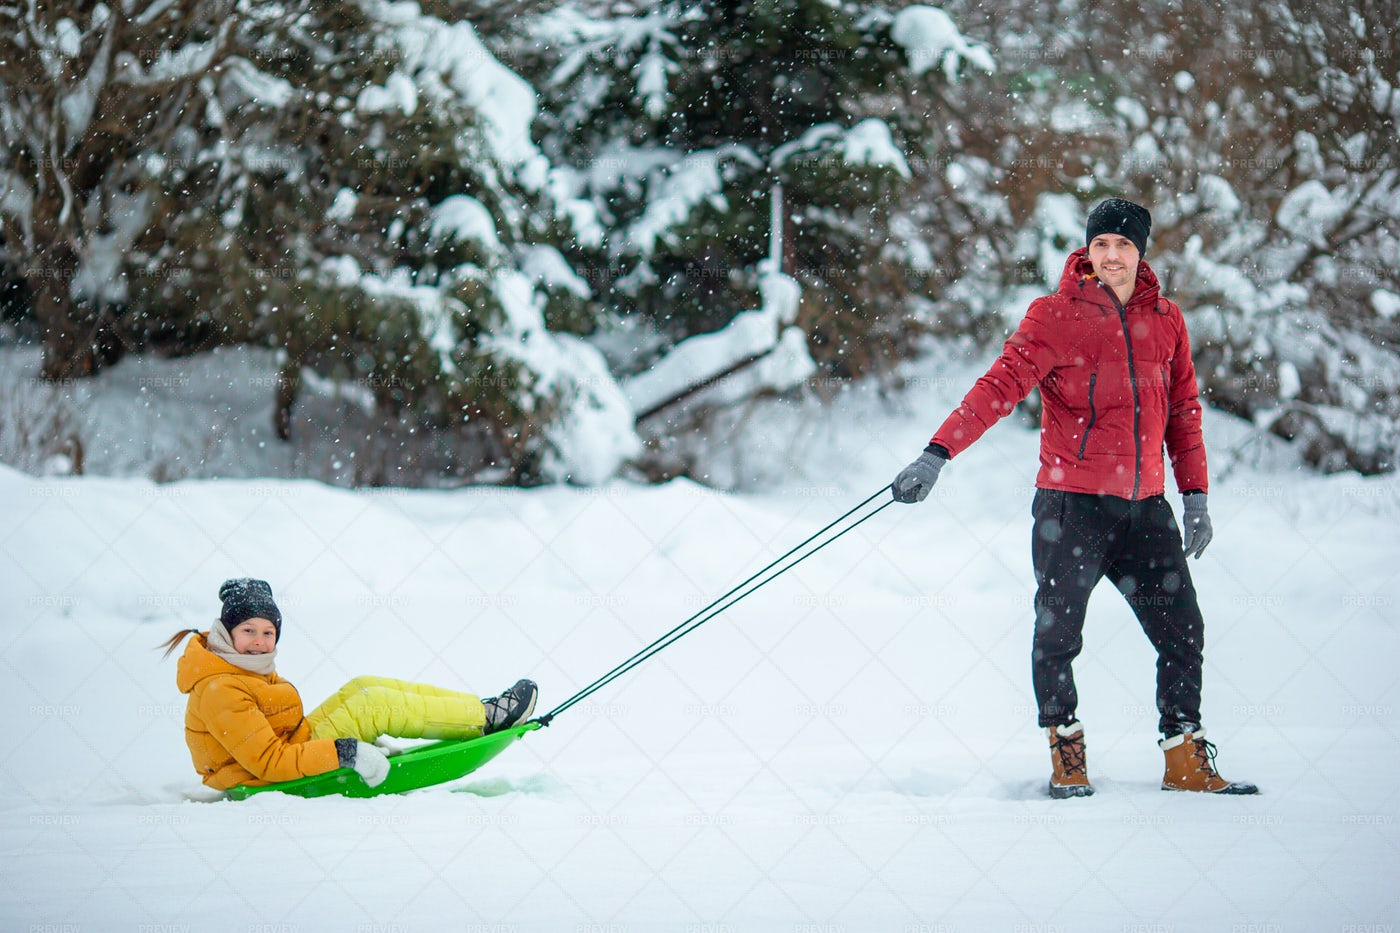 Dad Pulling Girl On Sled: Stock Photos